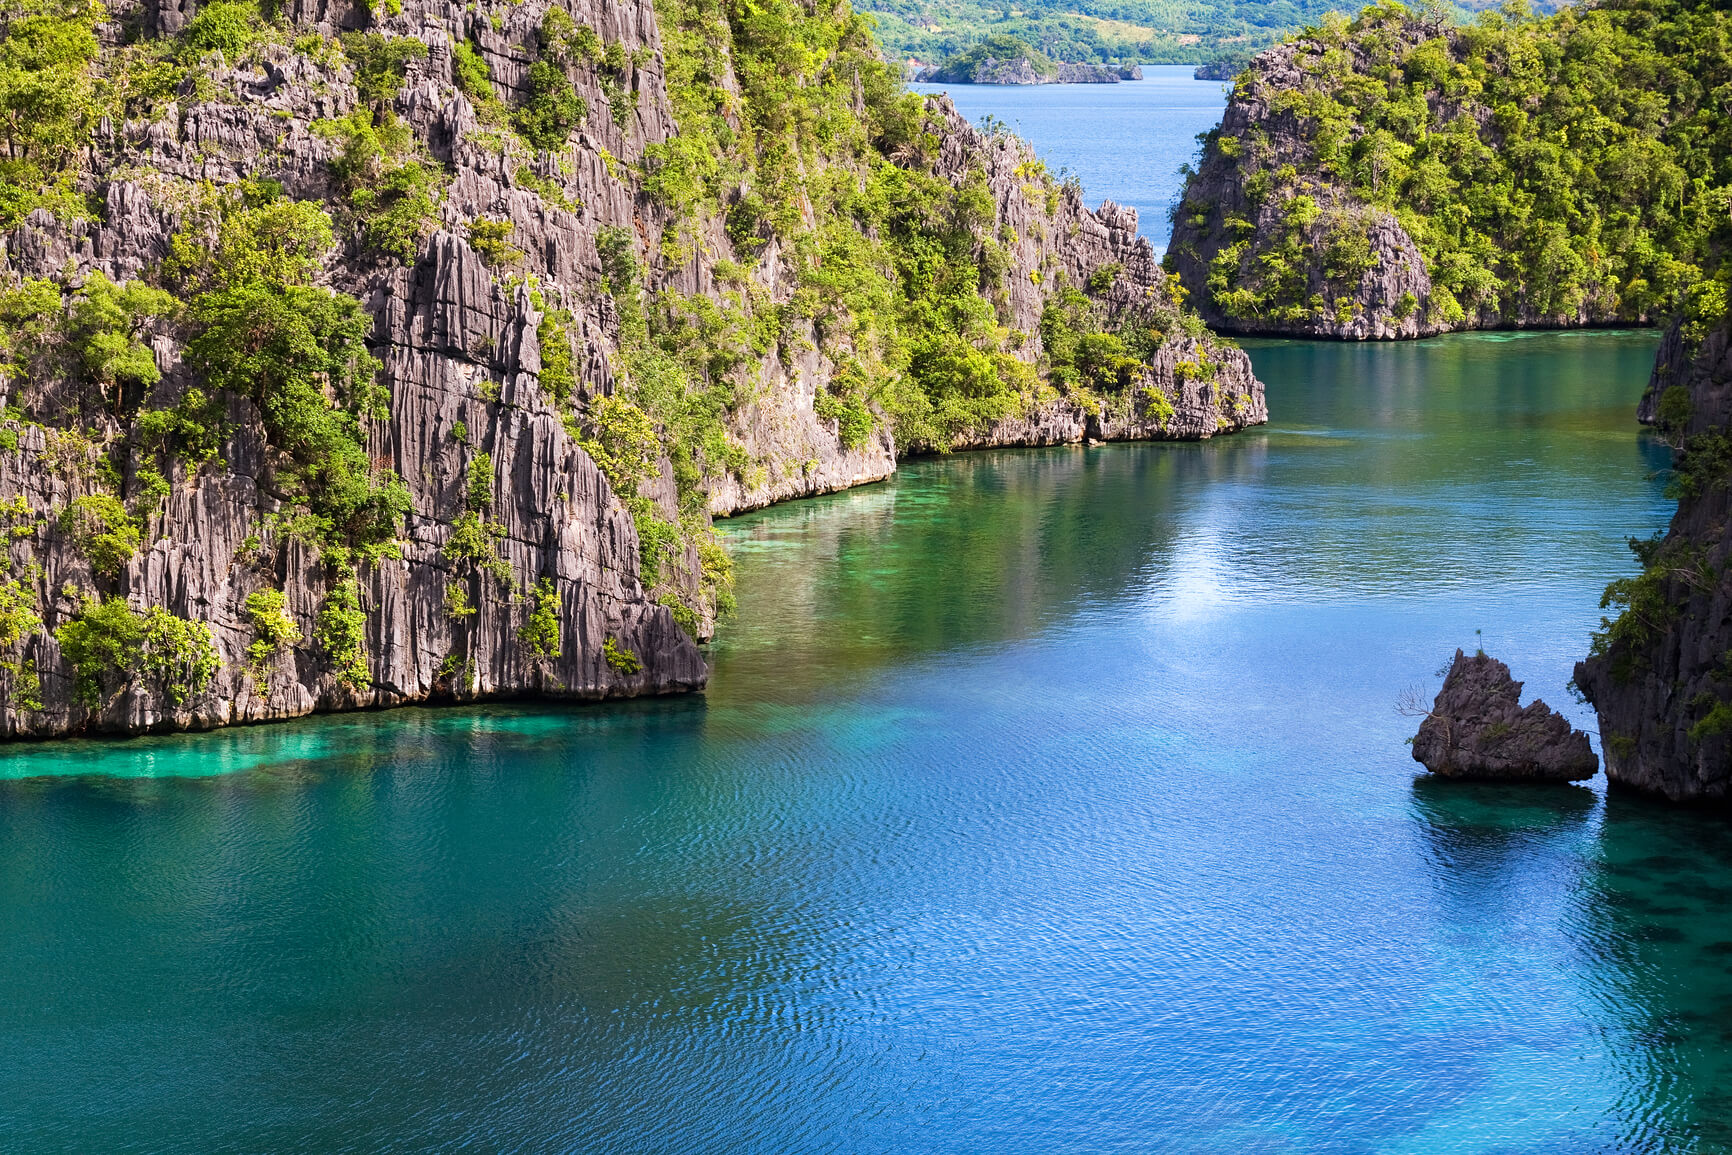 Helsinki, Finland to Manila, Philippines for only €386 roundtrip